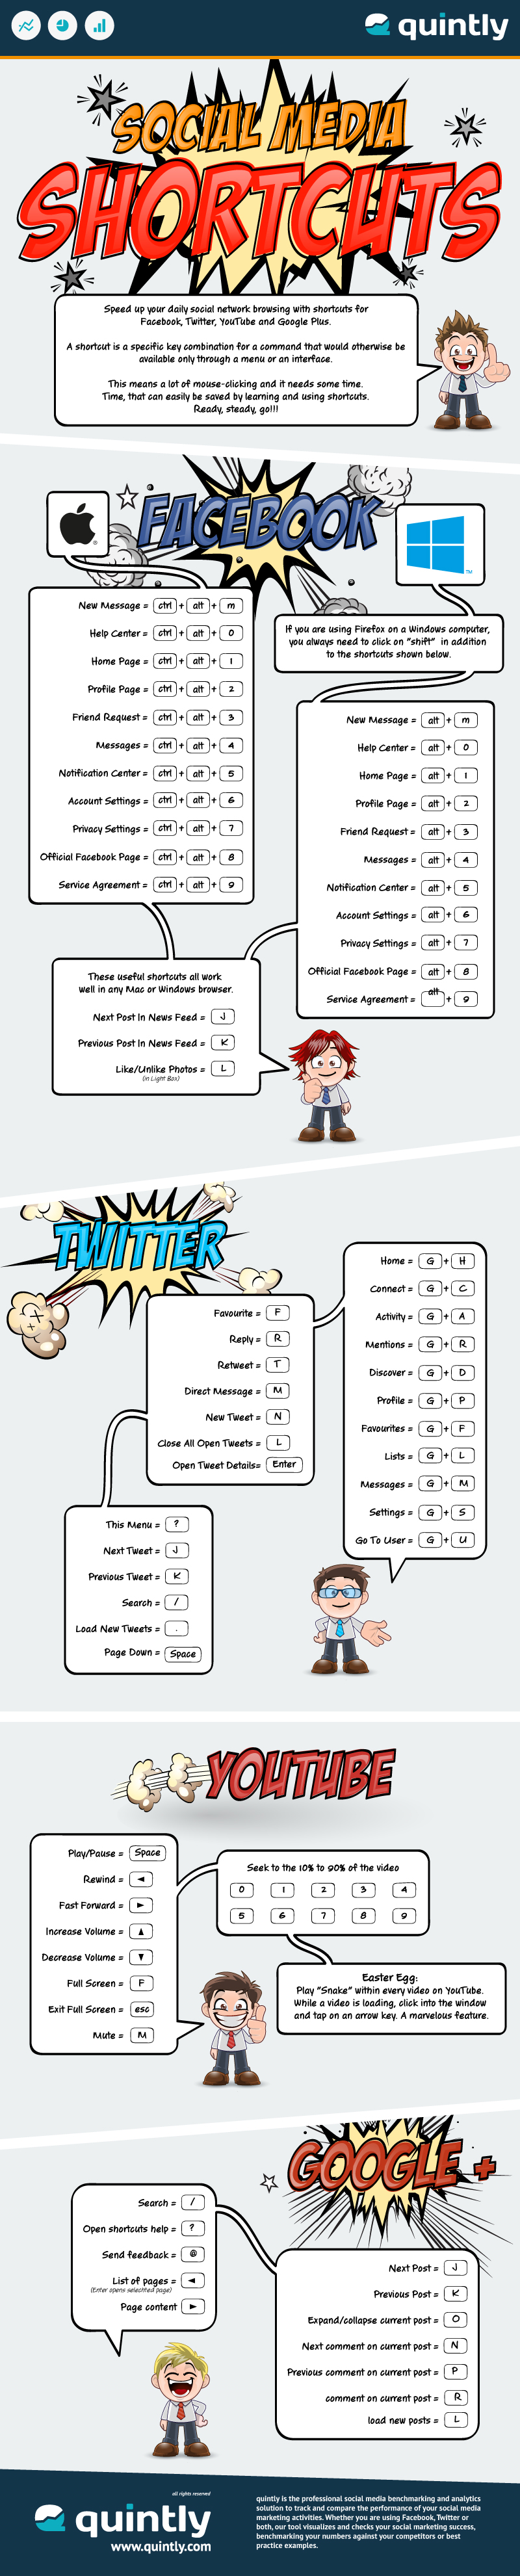 quintly Infographic: Social Media Shortcuts - How To Save Time On Social Media Platforms